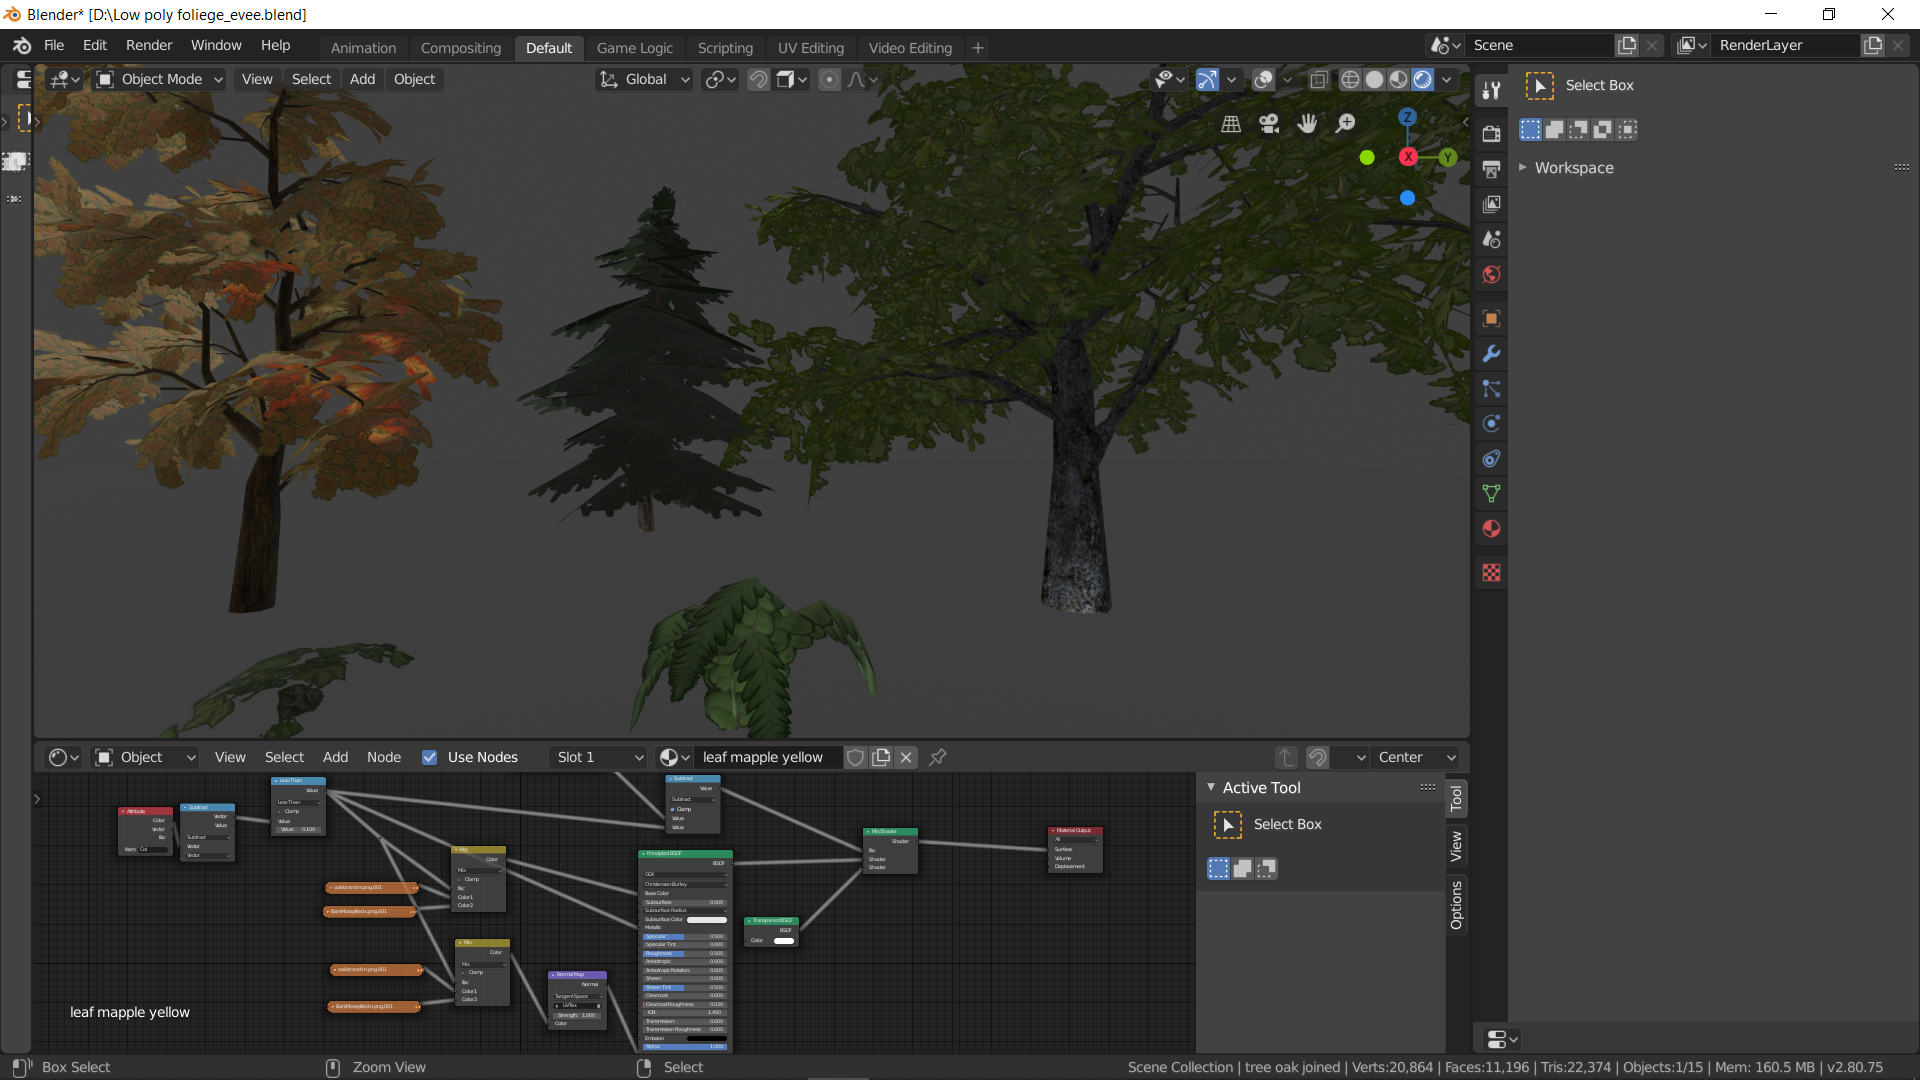 low poly foliage - blendswap #7131 ported to eevee preview image 2